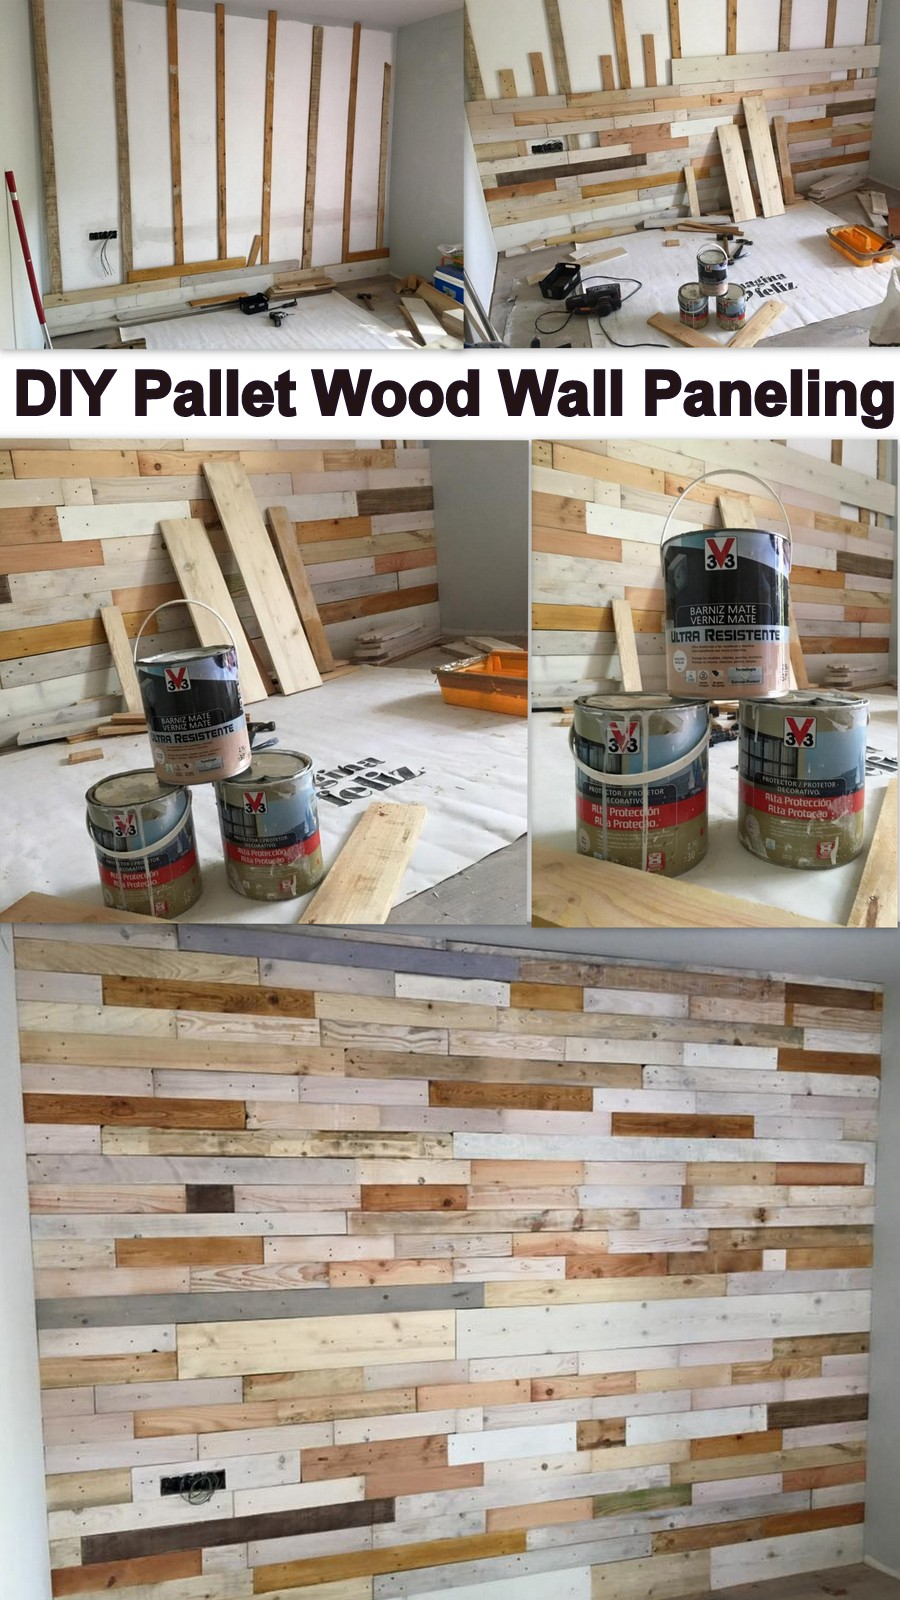 DIY Pallet Wood Wall Paneling